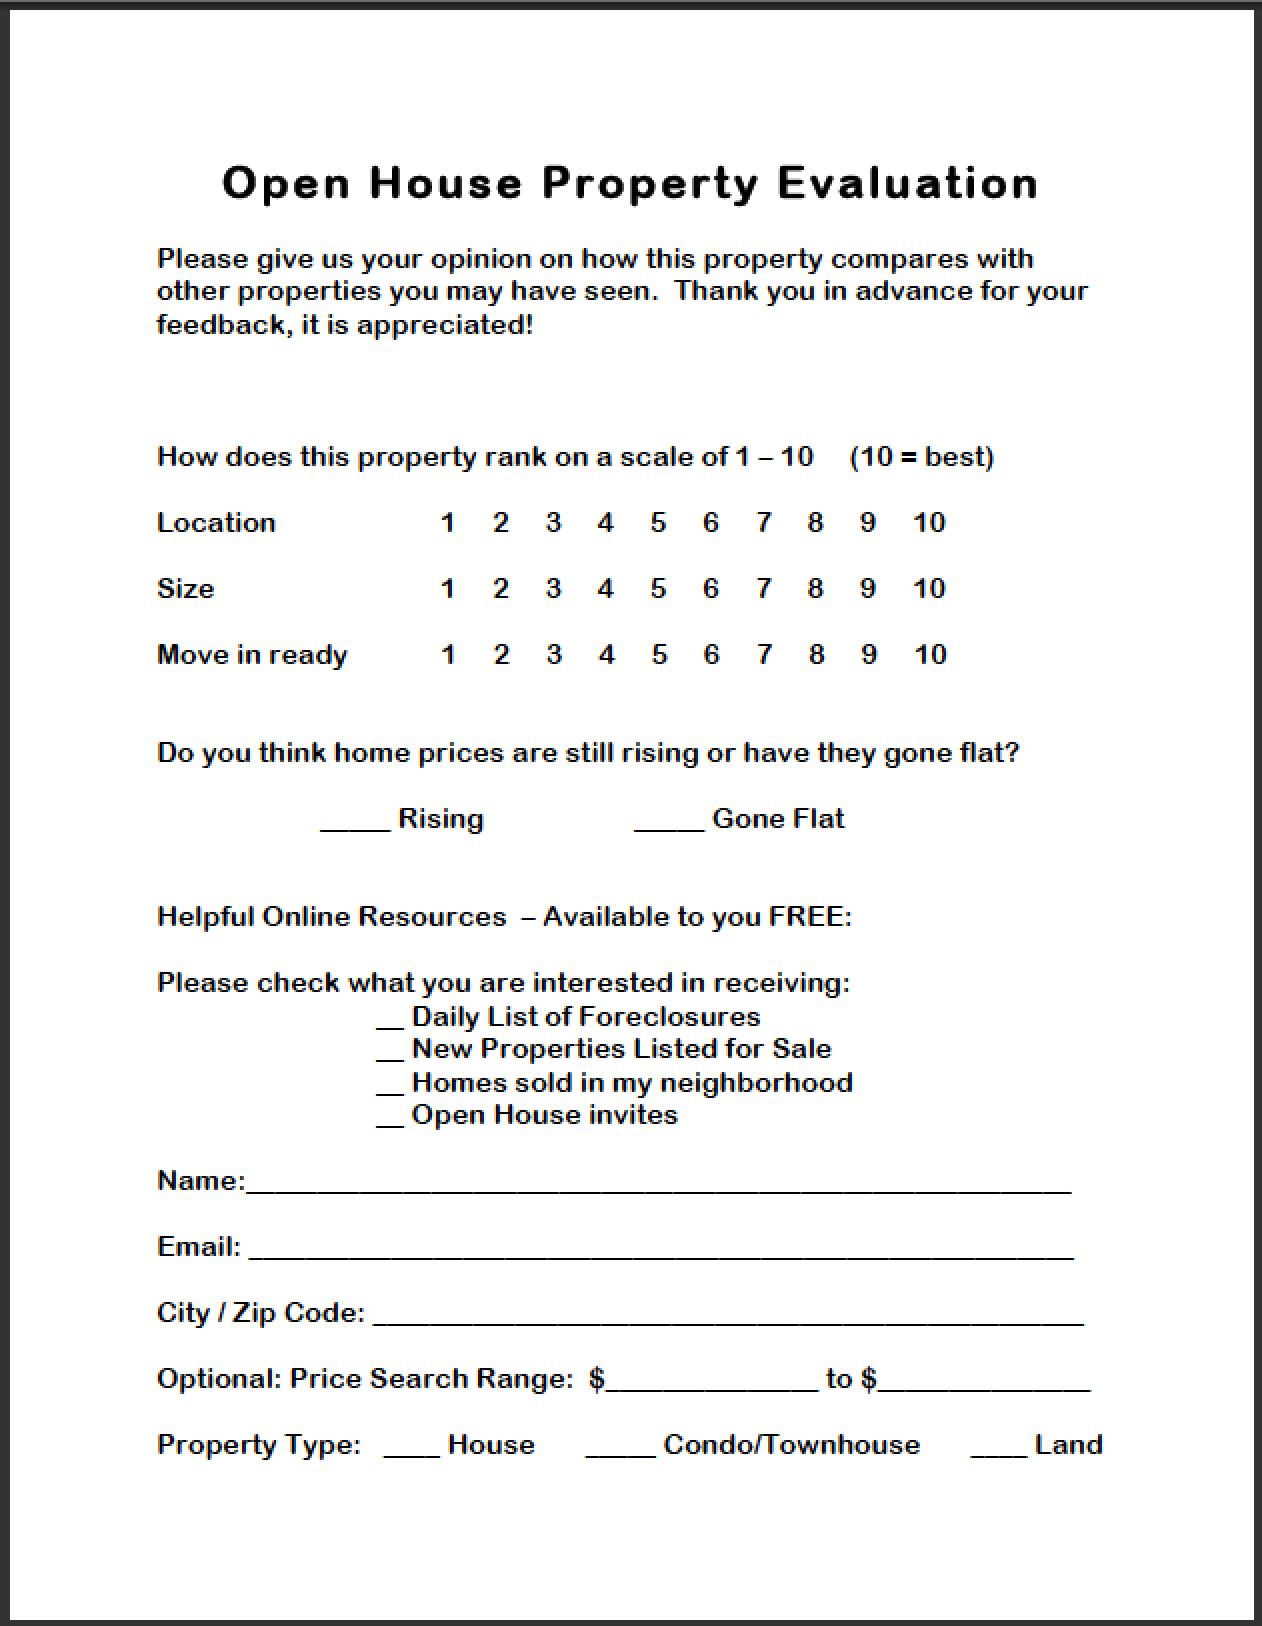 Open House Evaluation Form  Kimberly Woods El Cajon Ca